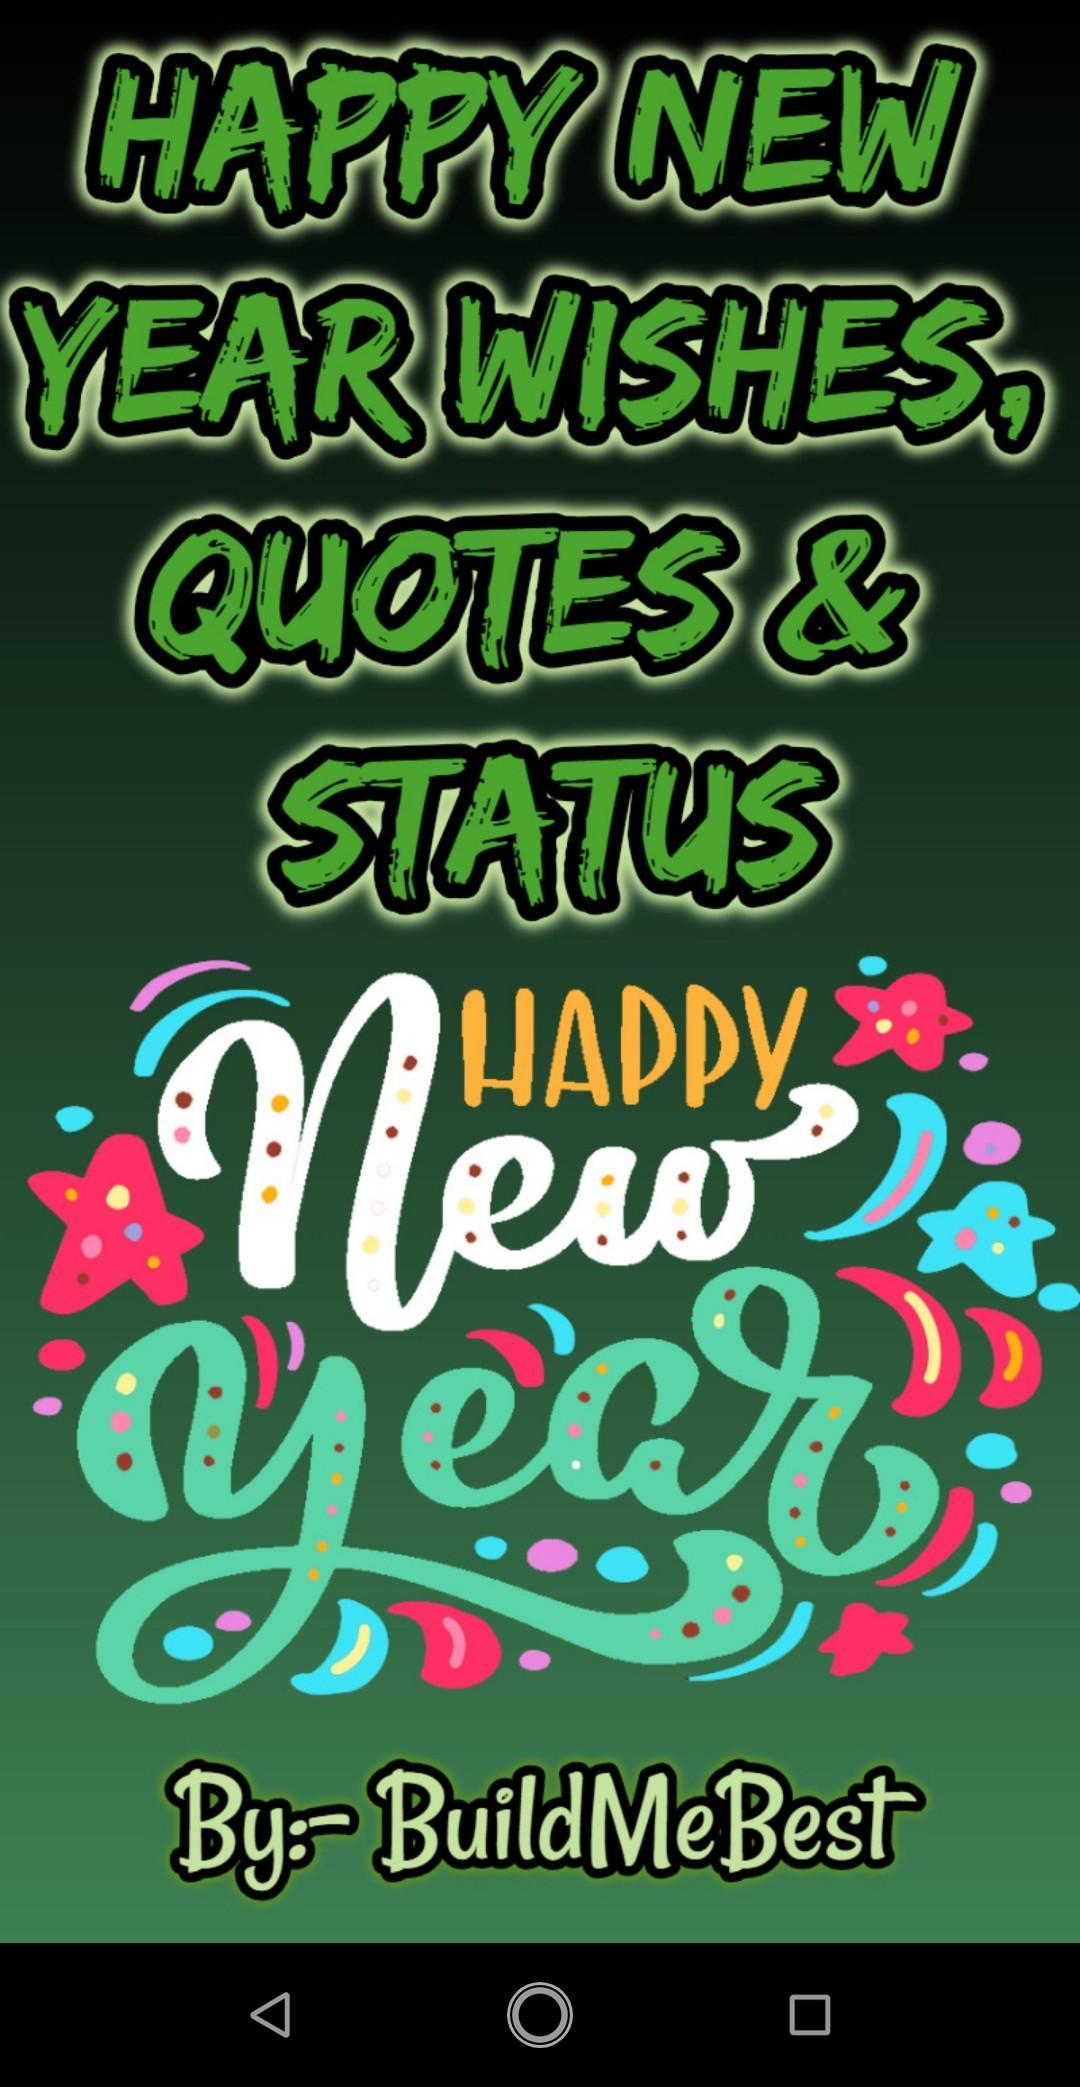 Happy New Year Wishes Quotes 2020 Message Status For